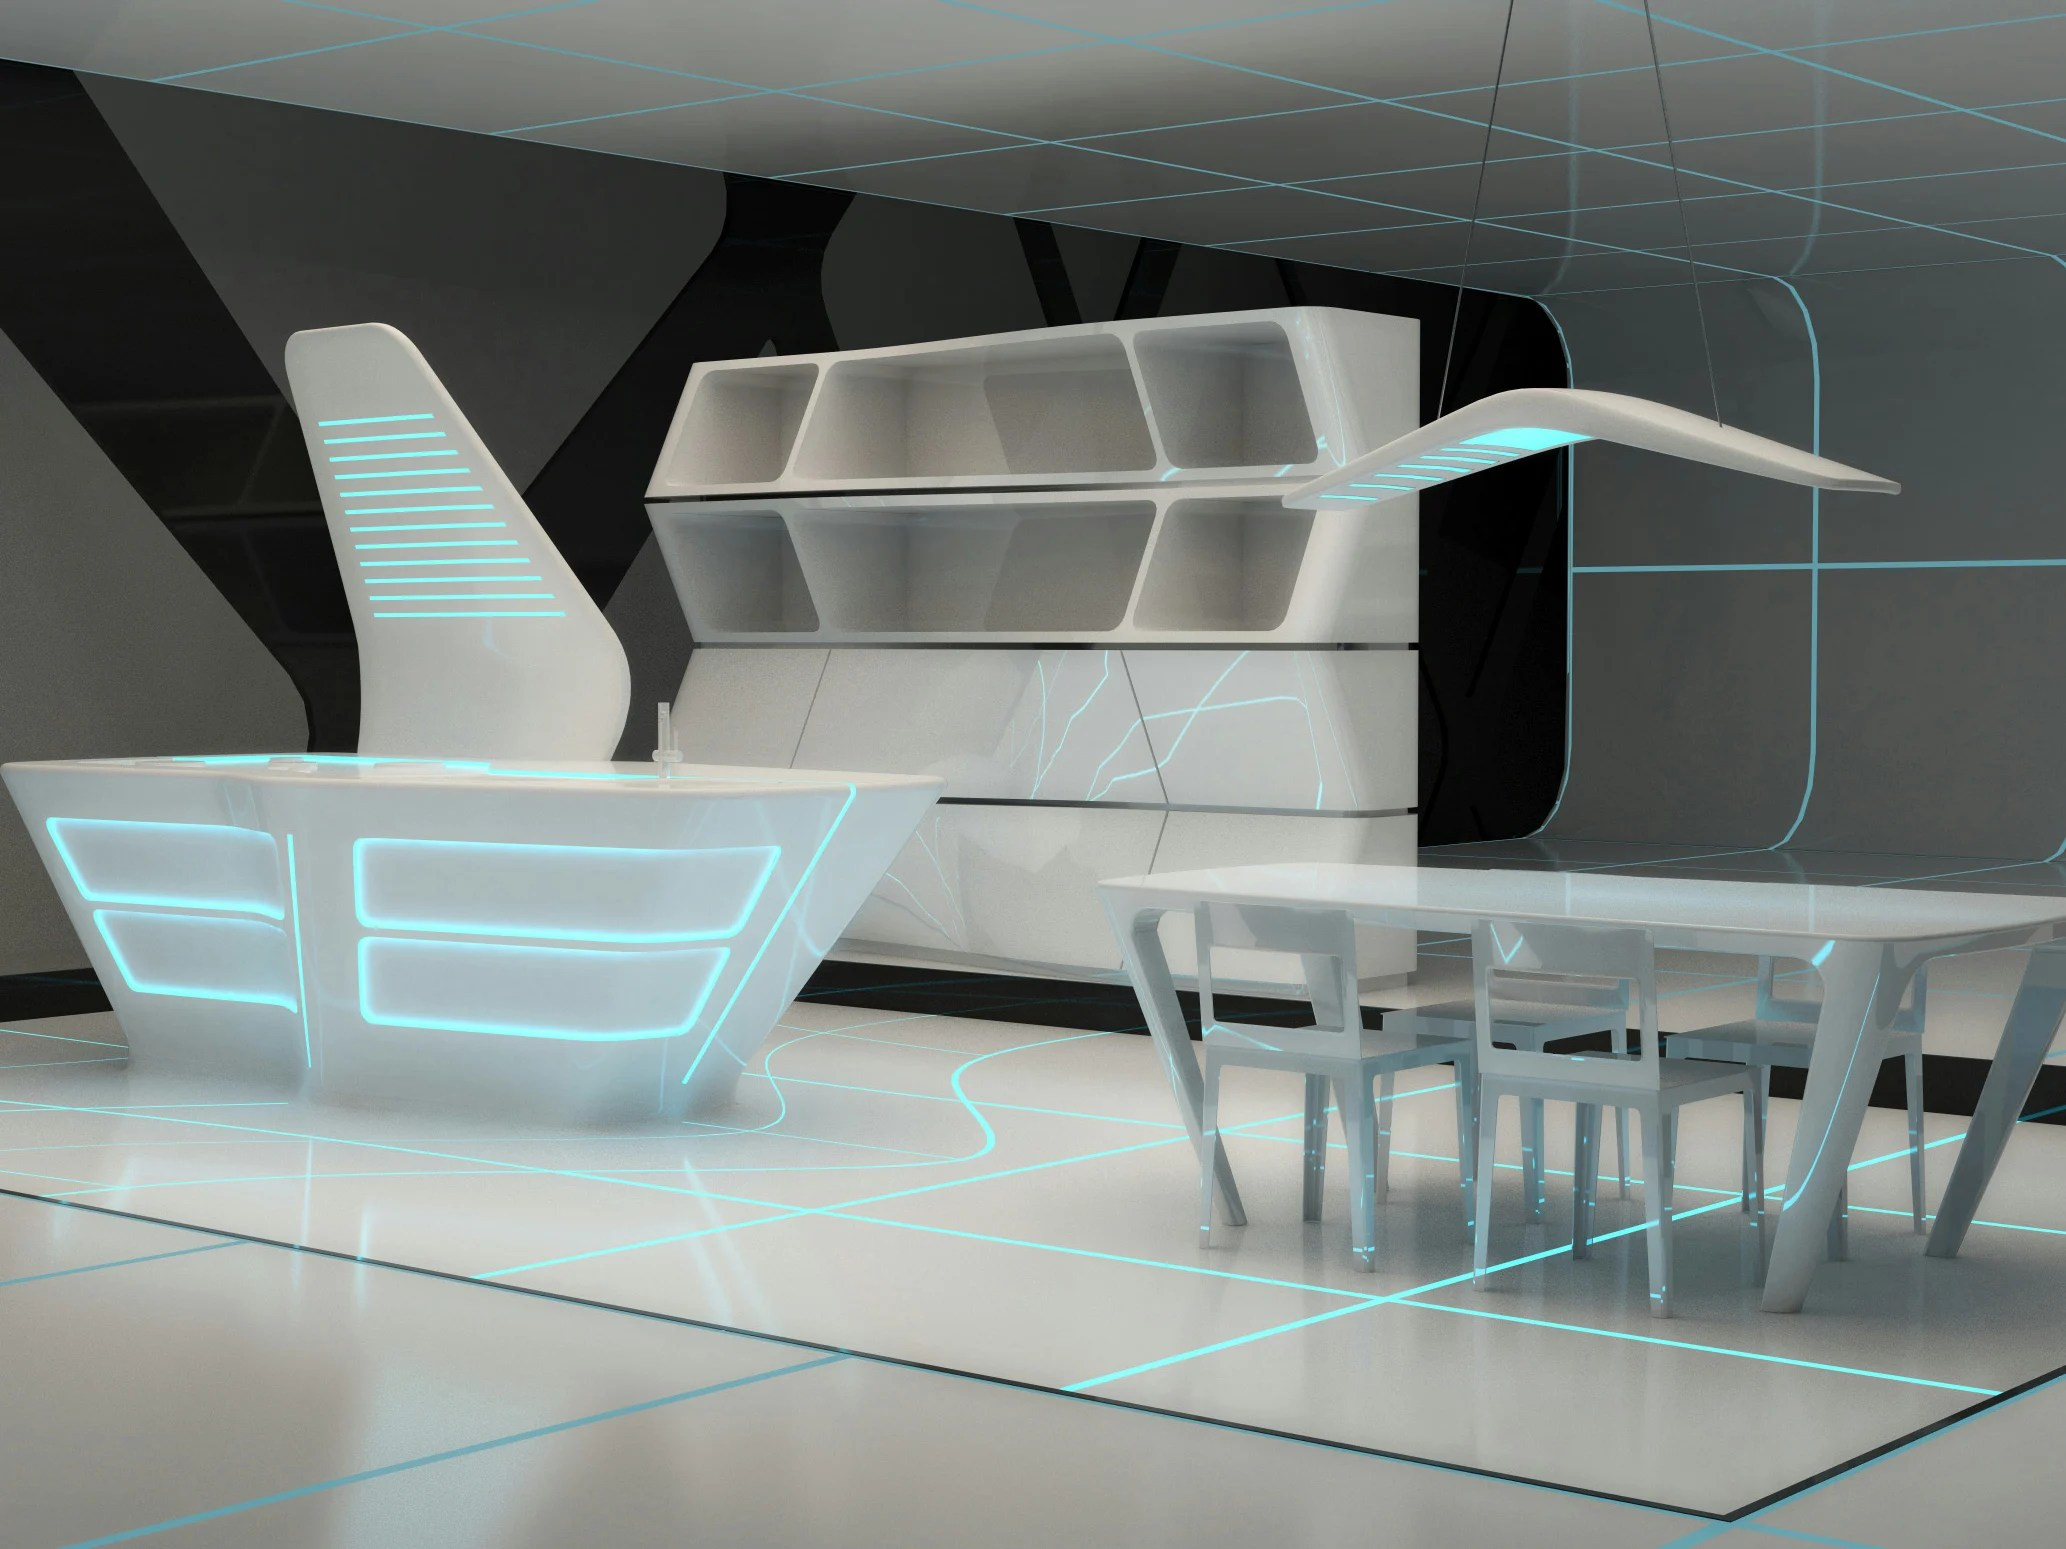 Cool Futuristic Furniture Corian Kitchen With Island Tron Designs Corian By